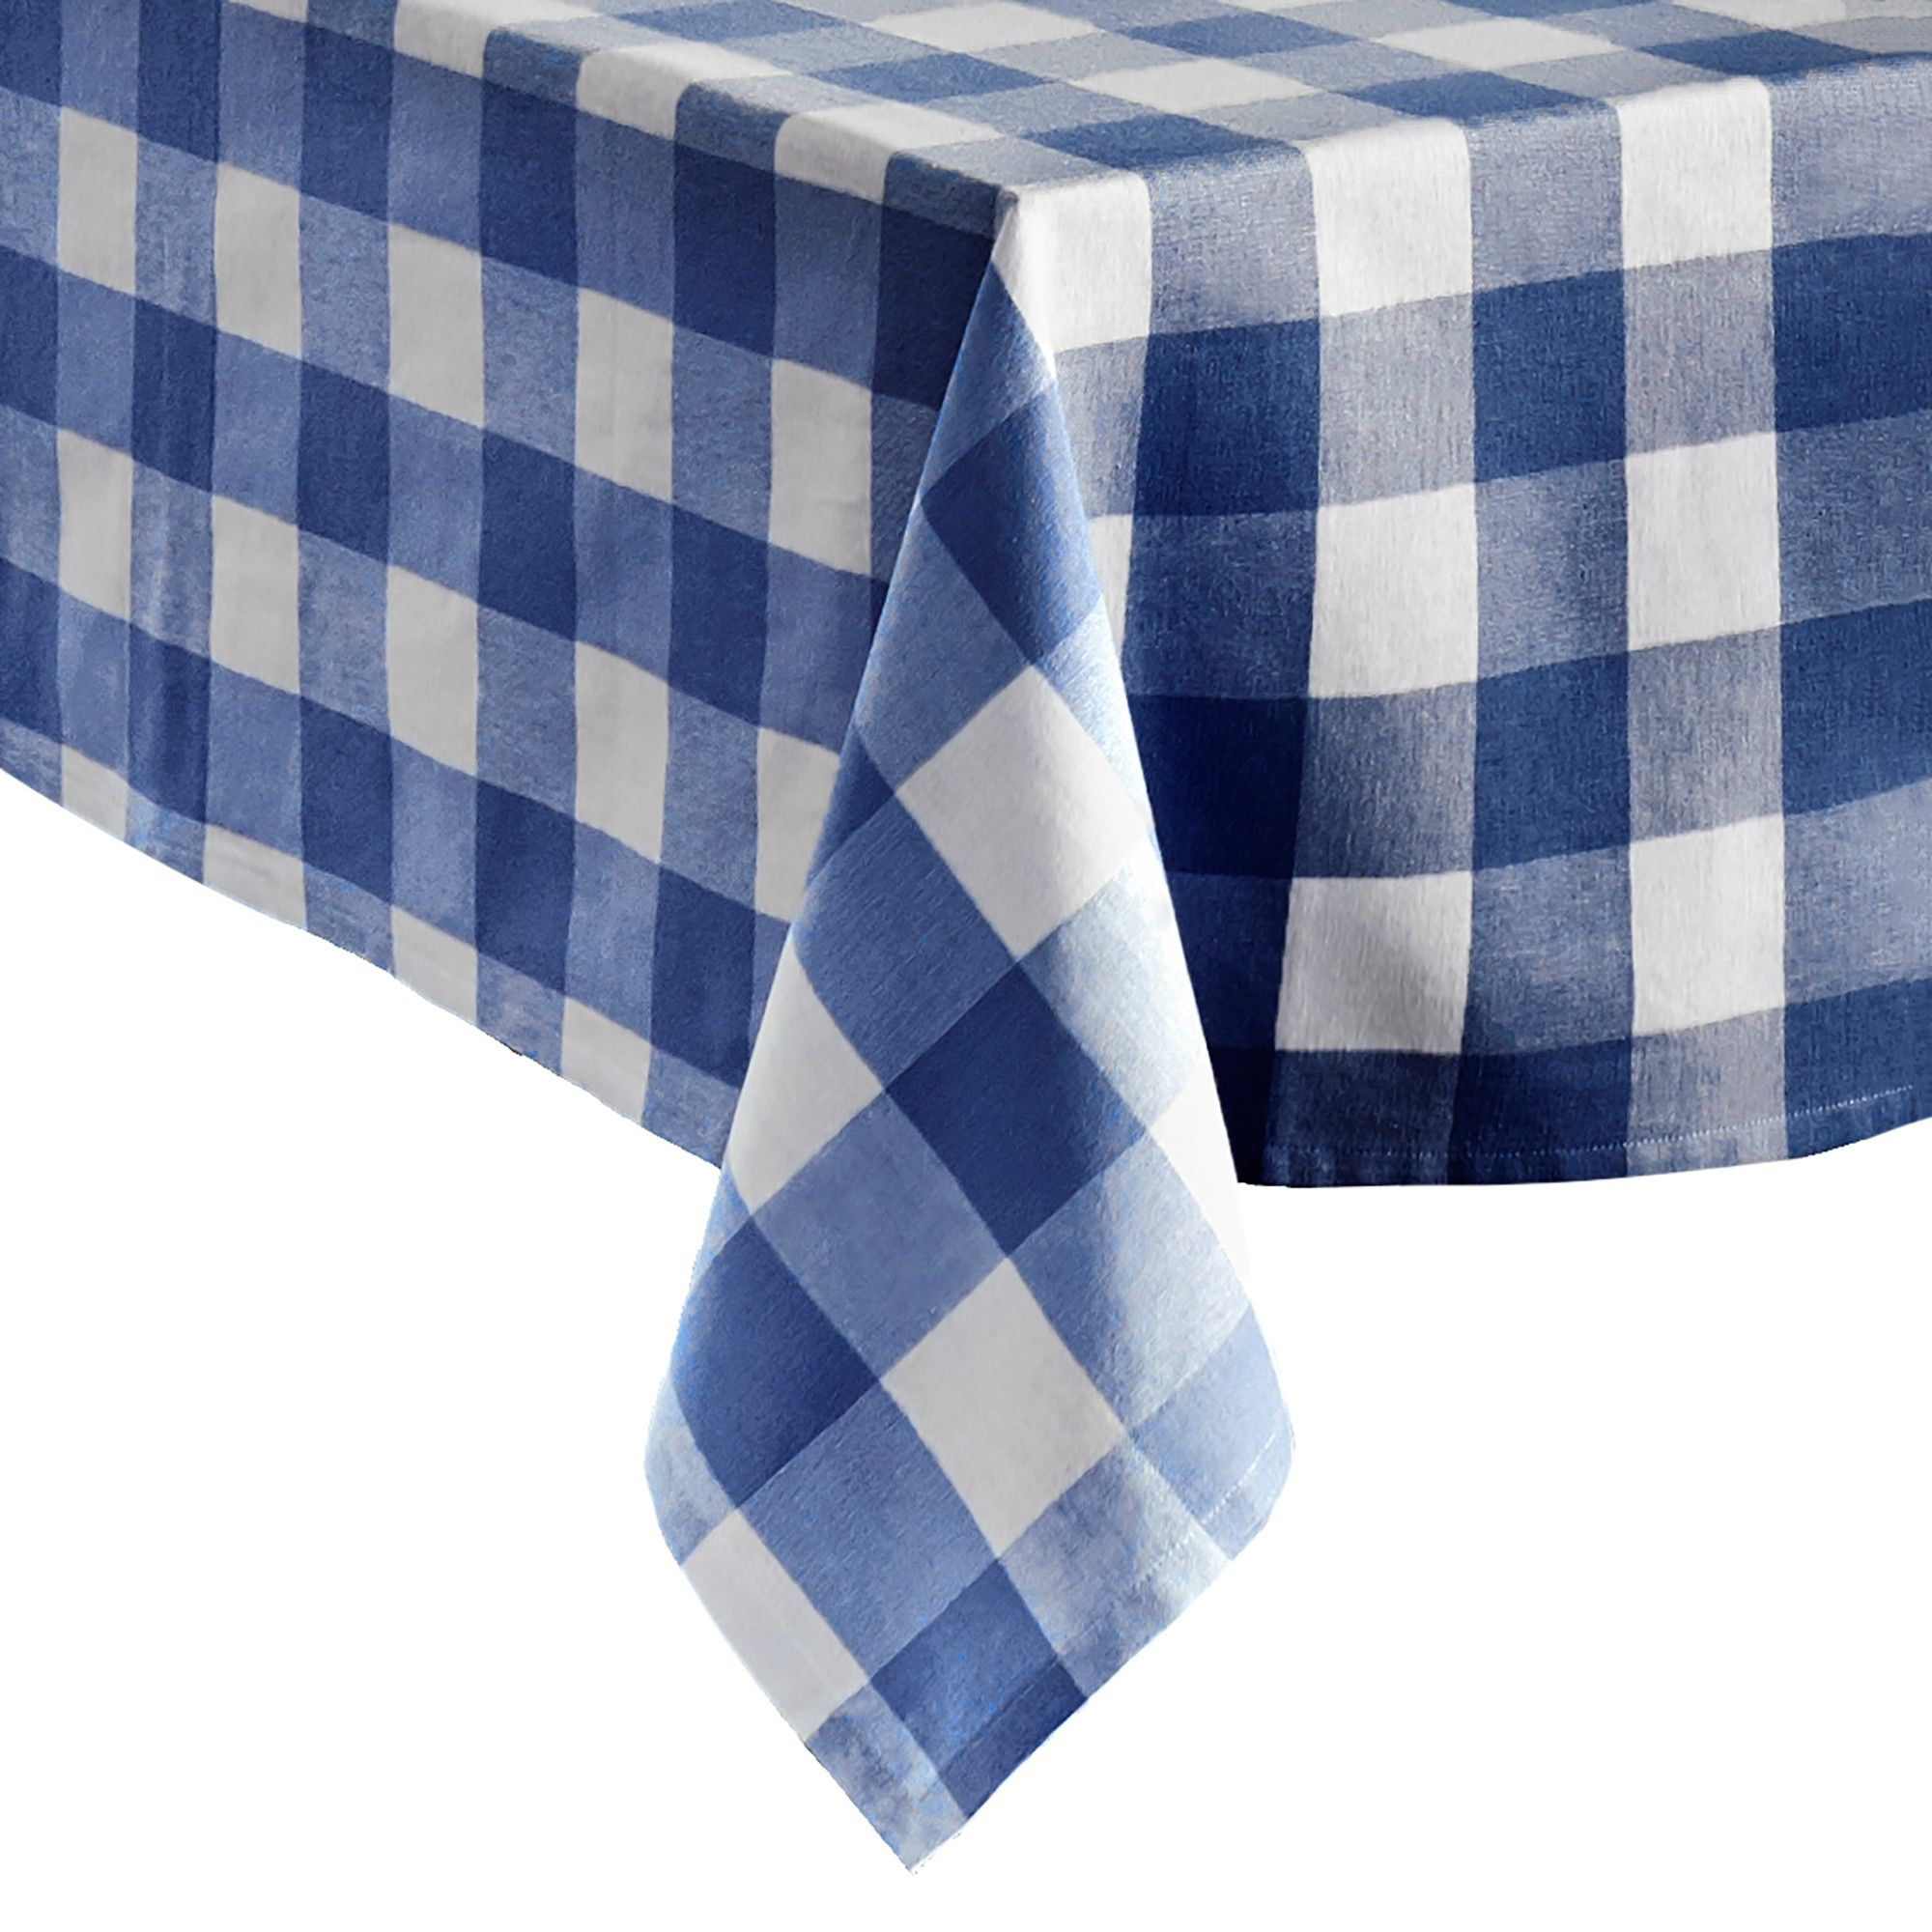 Farmhouse Living Buffalo Check Tablecloth Collection 60 X 120 Blue White Elrene Home Fashions In 2020 Elrene Home Fashions Buffalo Check Tablecloth Design Imports